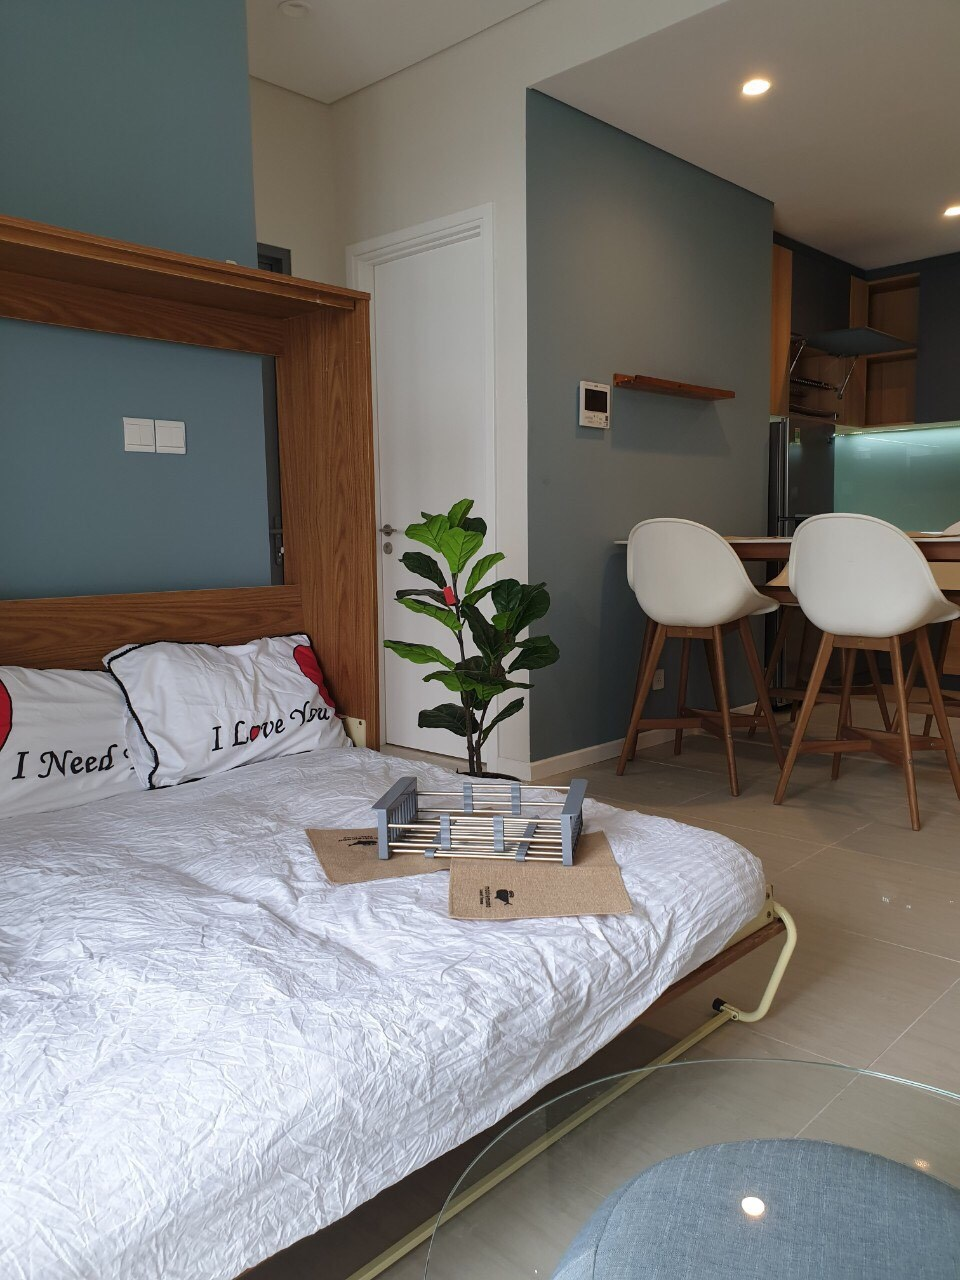 DI0942 - Diamond Island Apartment For Rent & Sale in Ho Chi Minh City - 1 bedroom